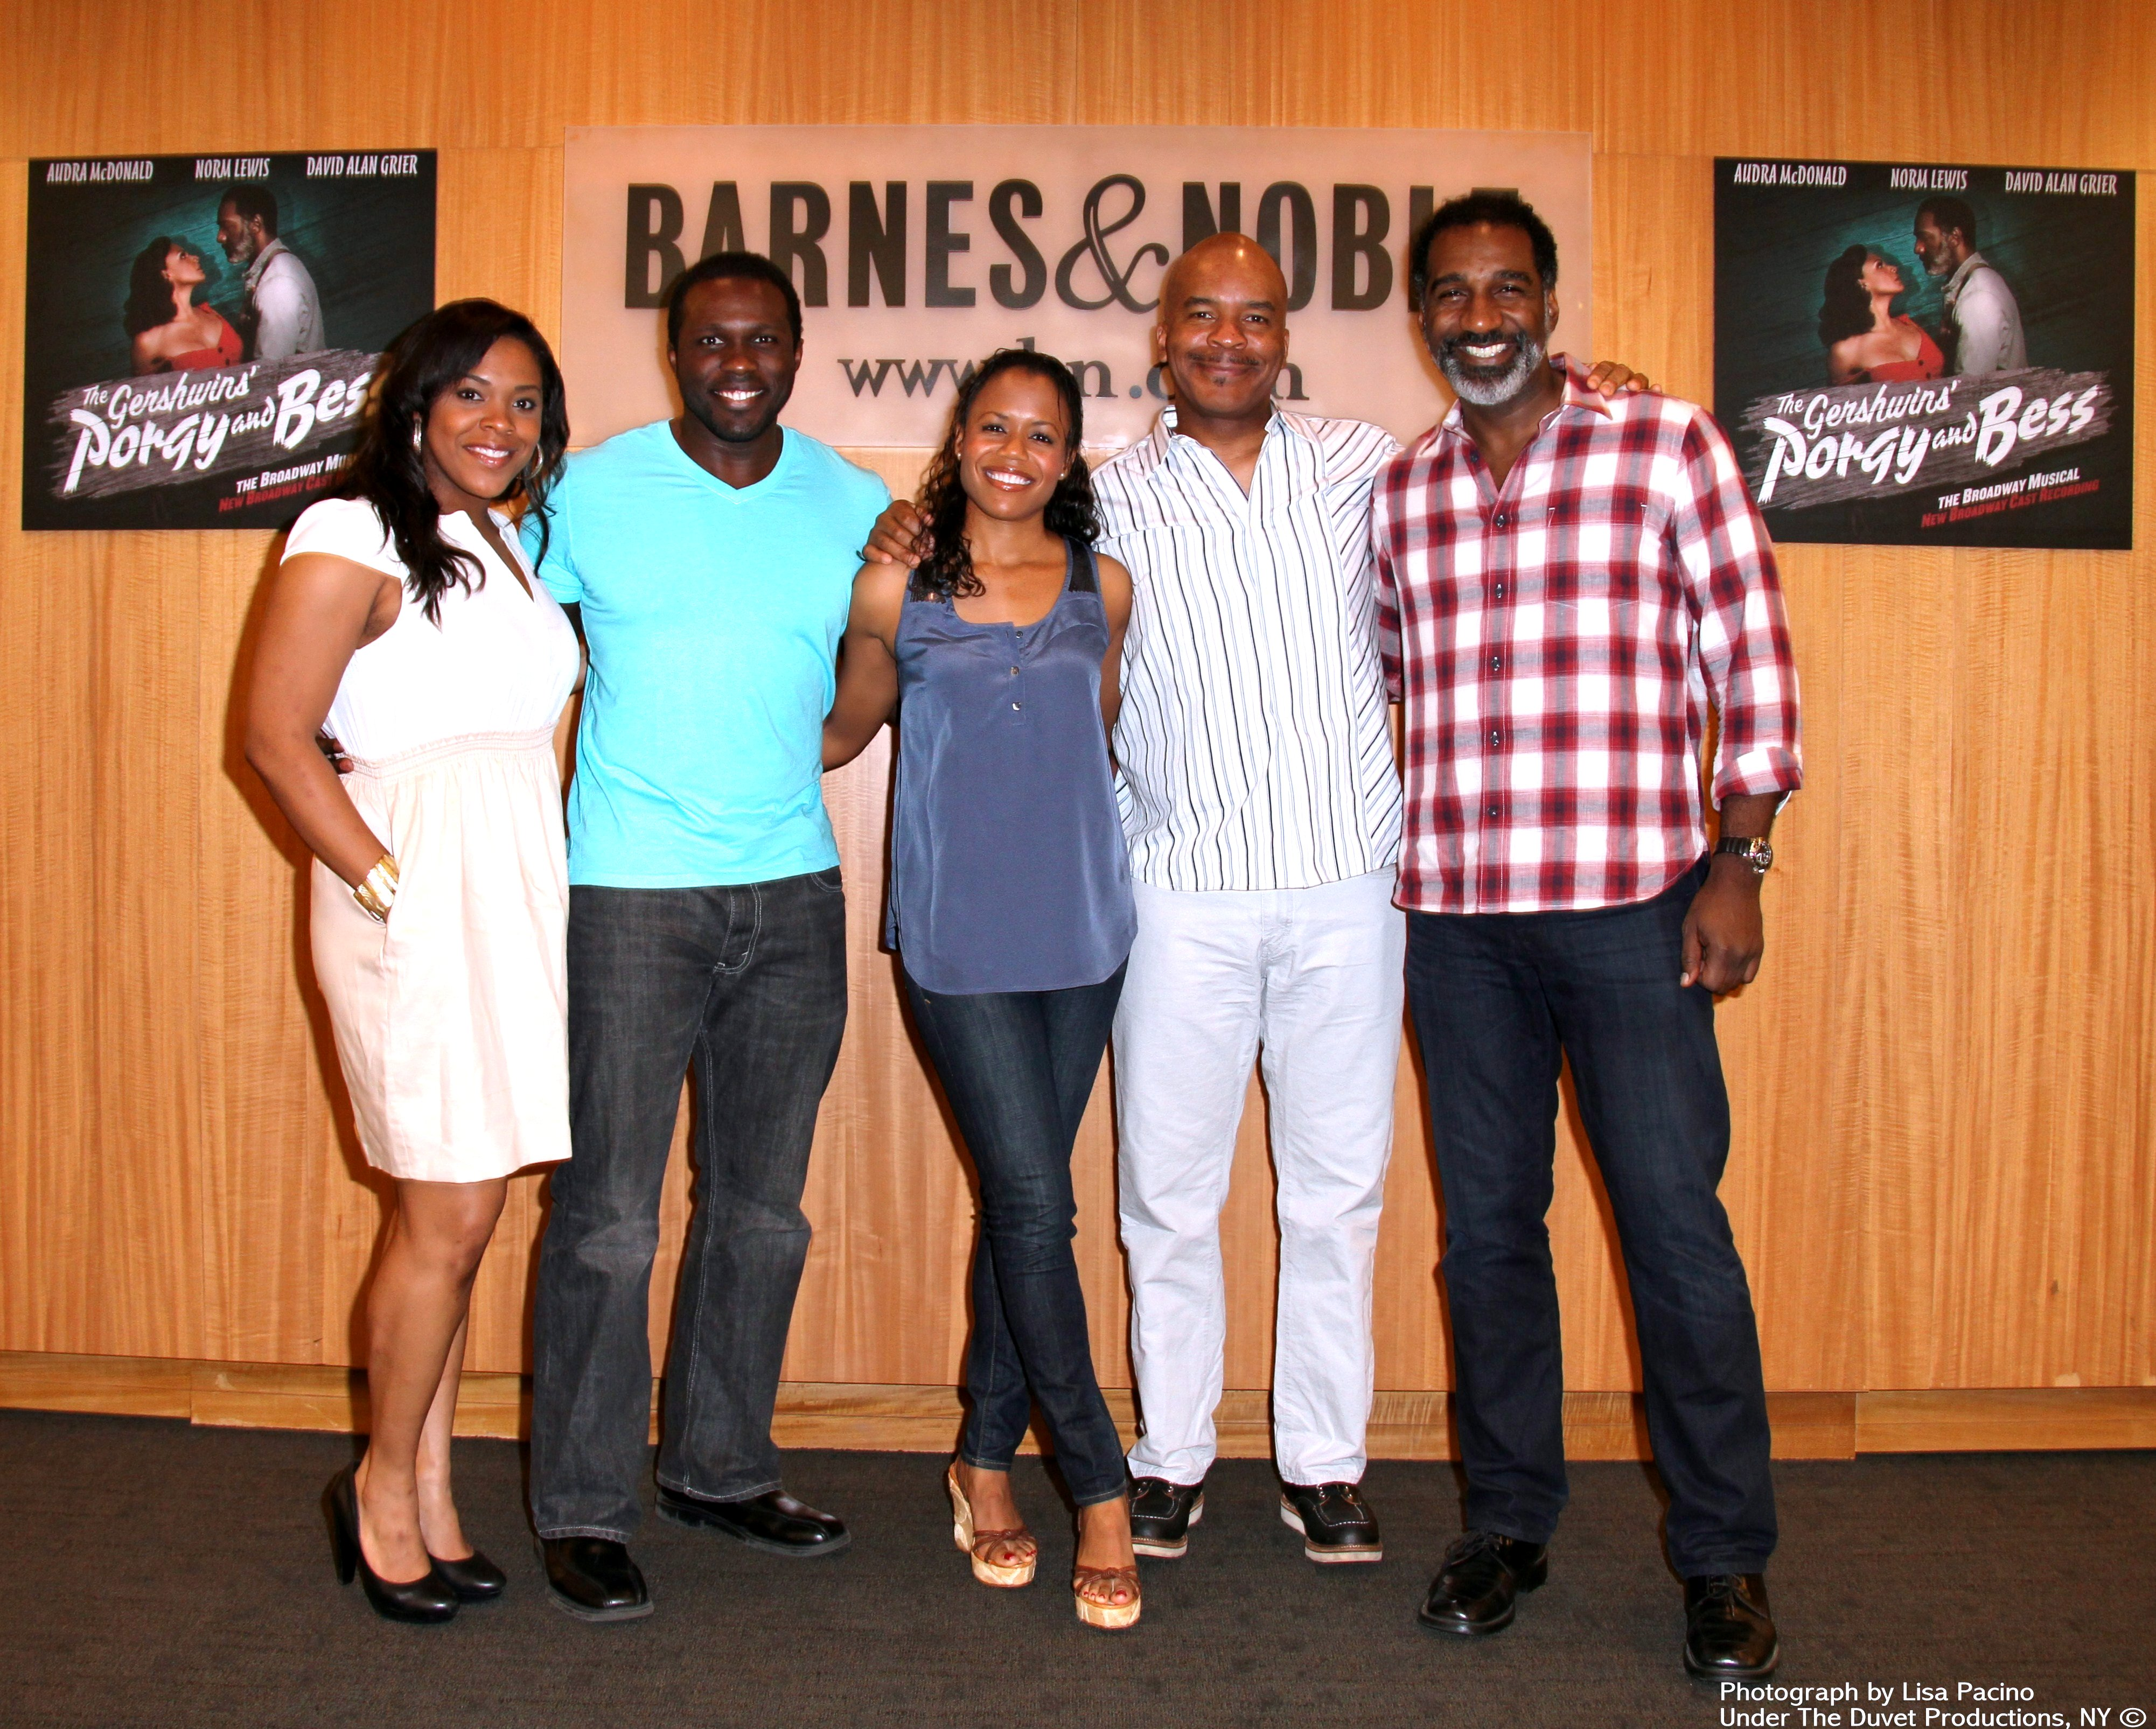 Photo Flash: PORGY & BESS Cast Signs Albums at Barnes & Noble!